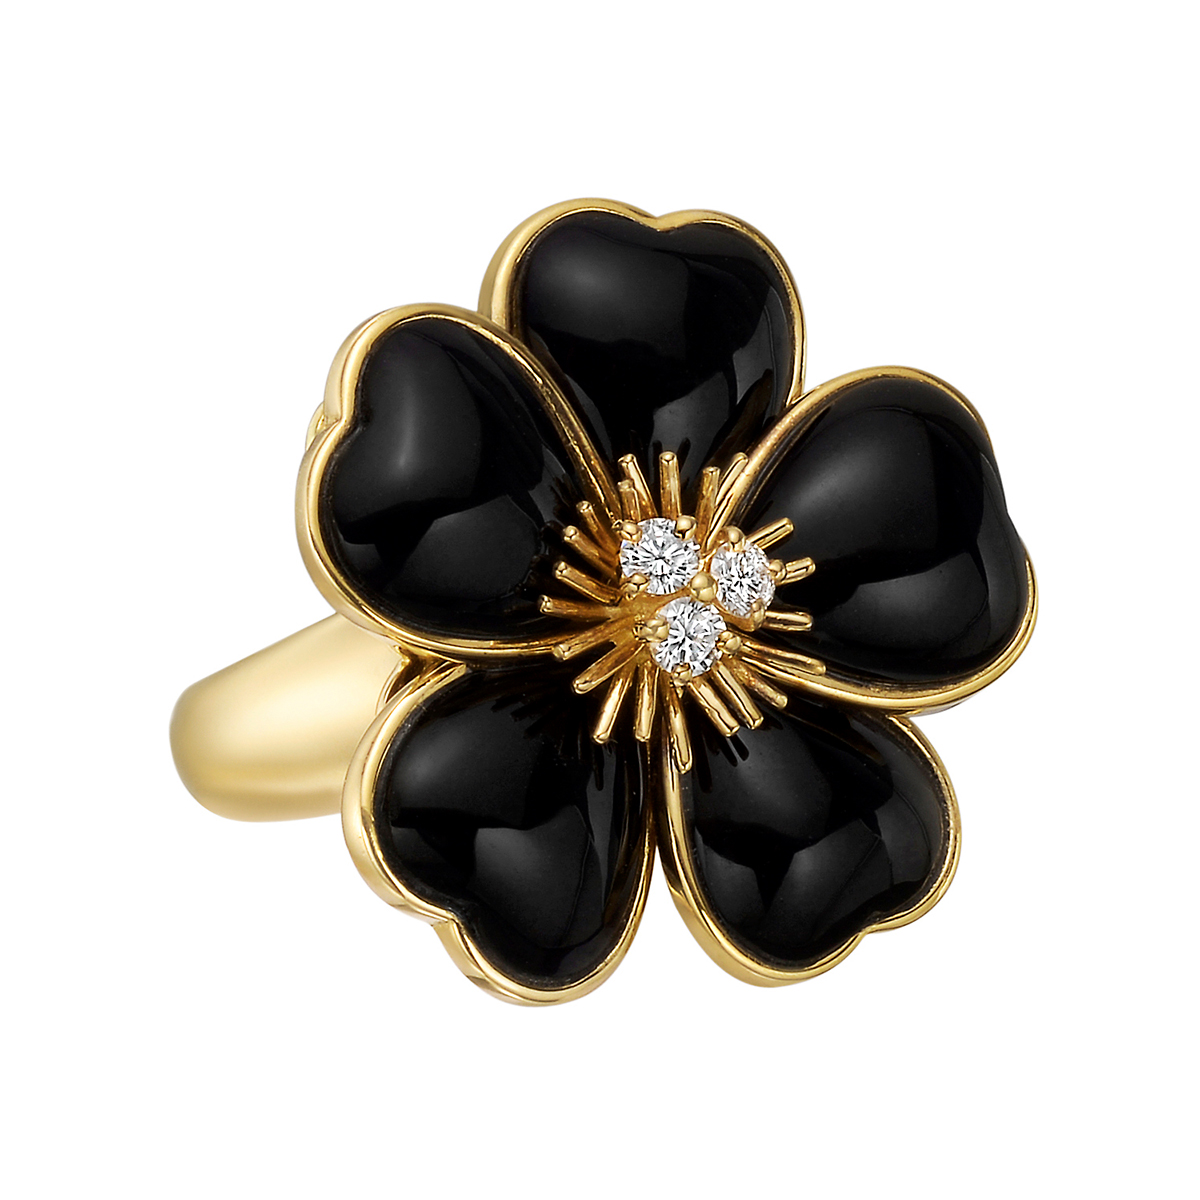 van cleef arpels black onyx rose de noel ring betteridge. Black Bedroom Furniture Sets. Home Design Ideas